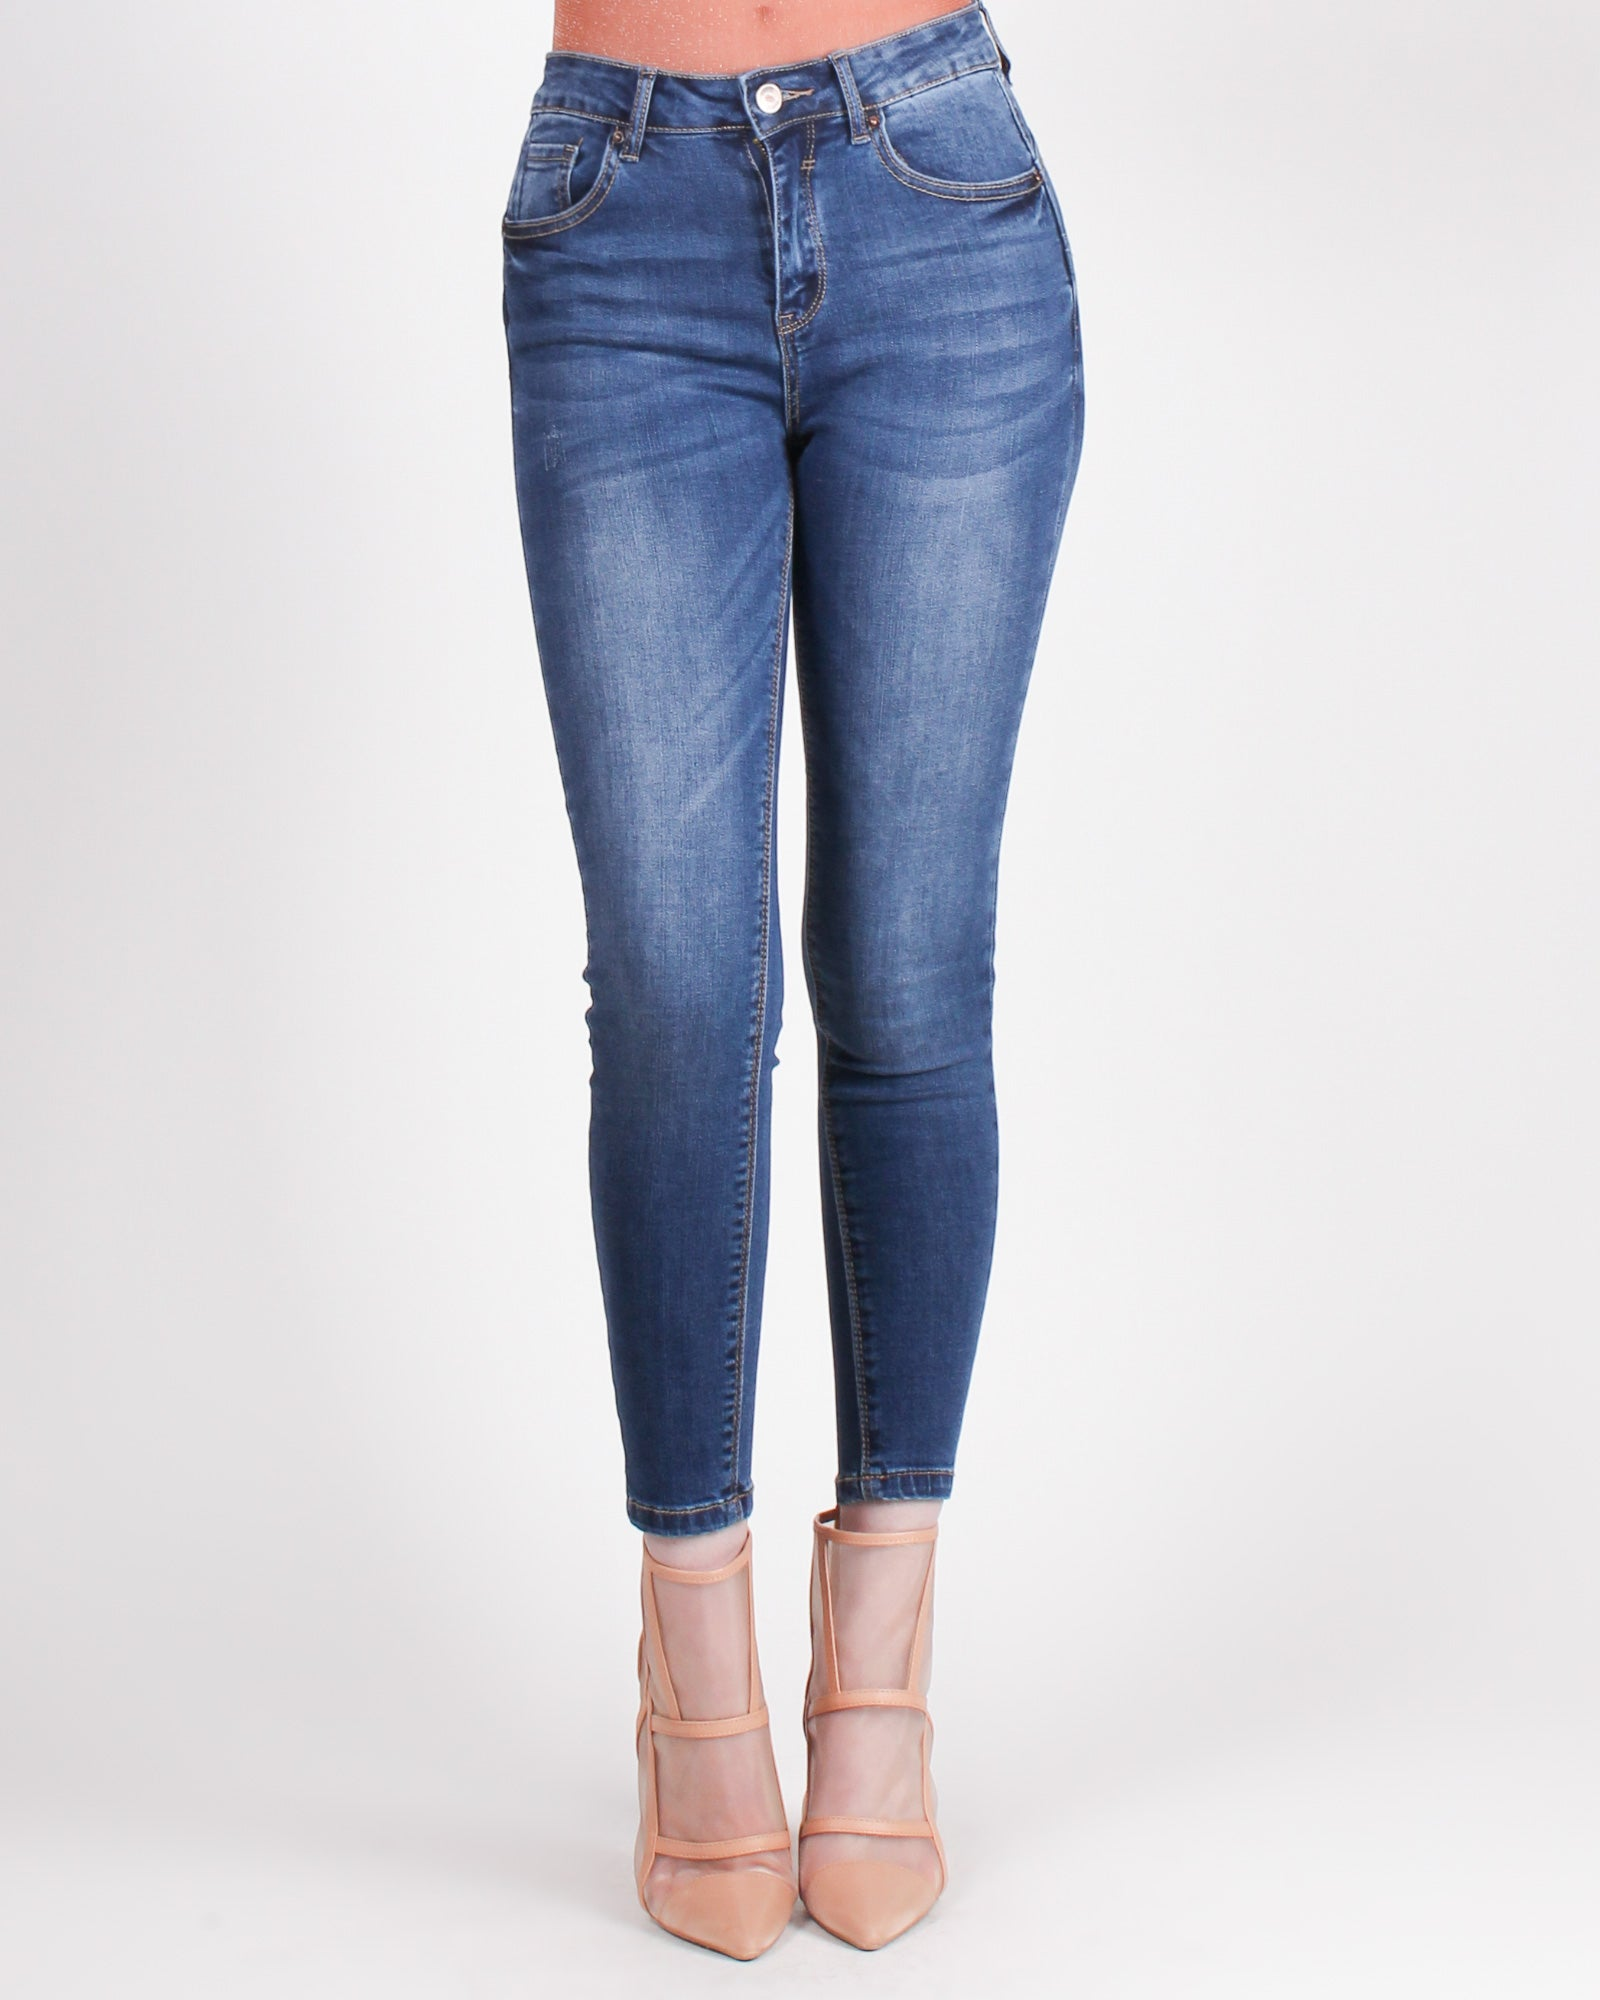 Fashion Q Shop Q Butt, I Know You're Jelly Skinny Jeans (Medium) 90137